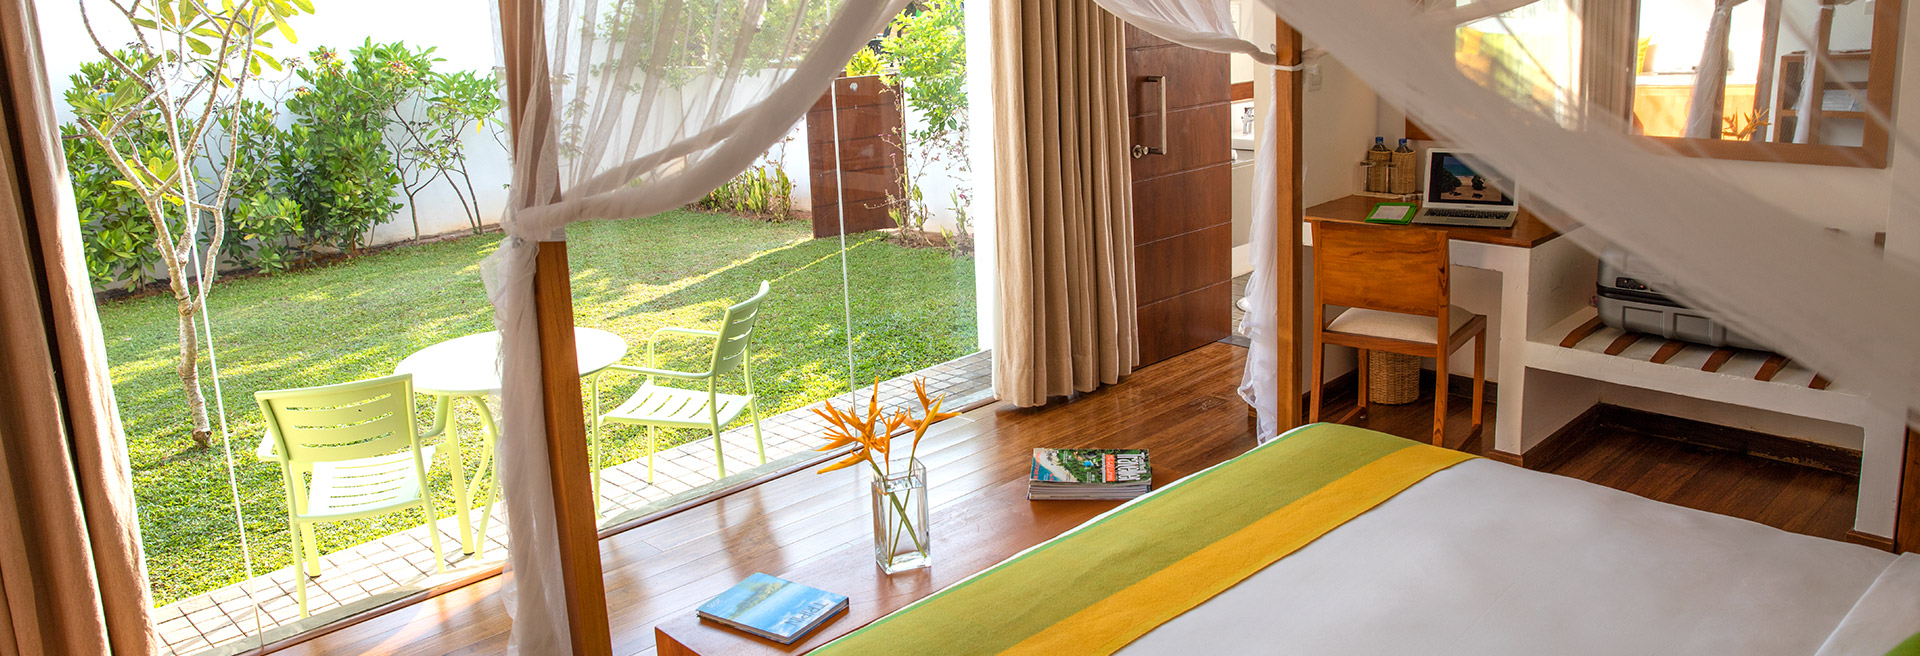 accommodation with a garden view